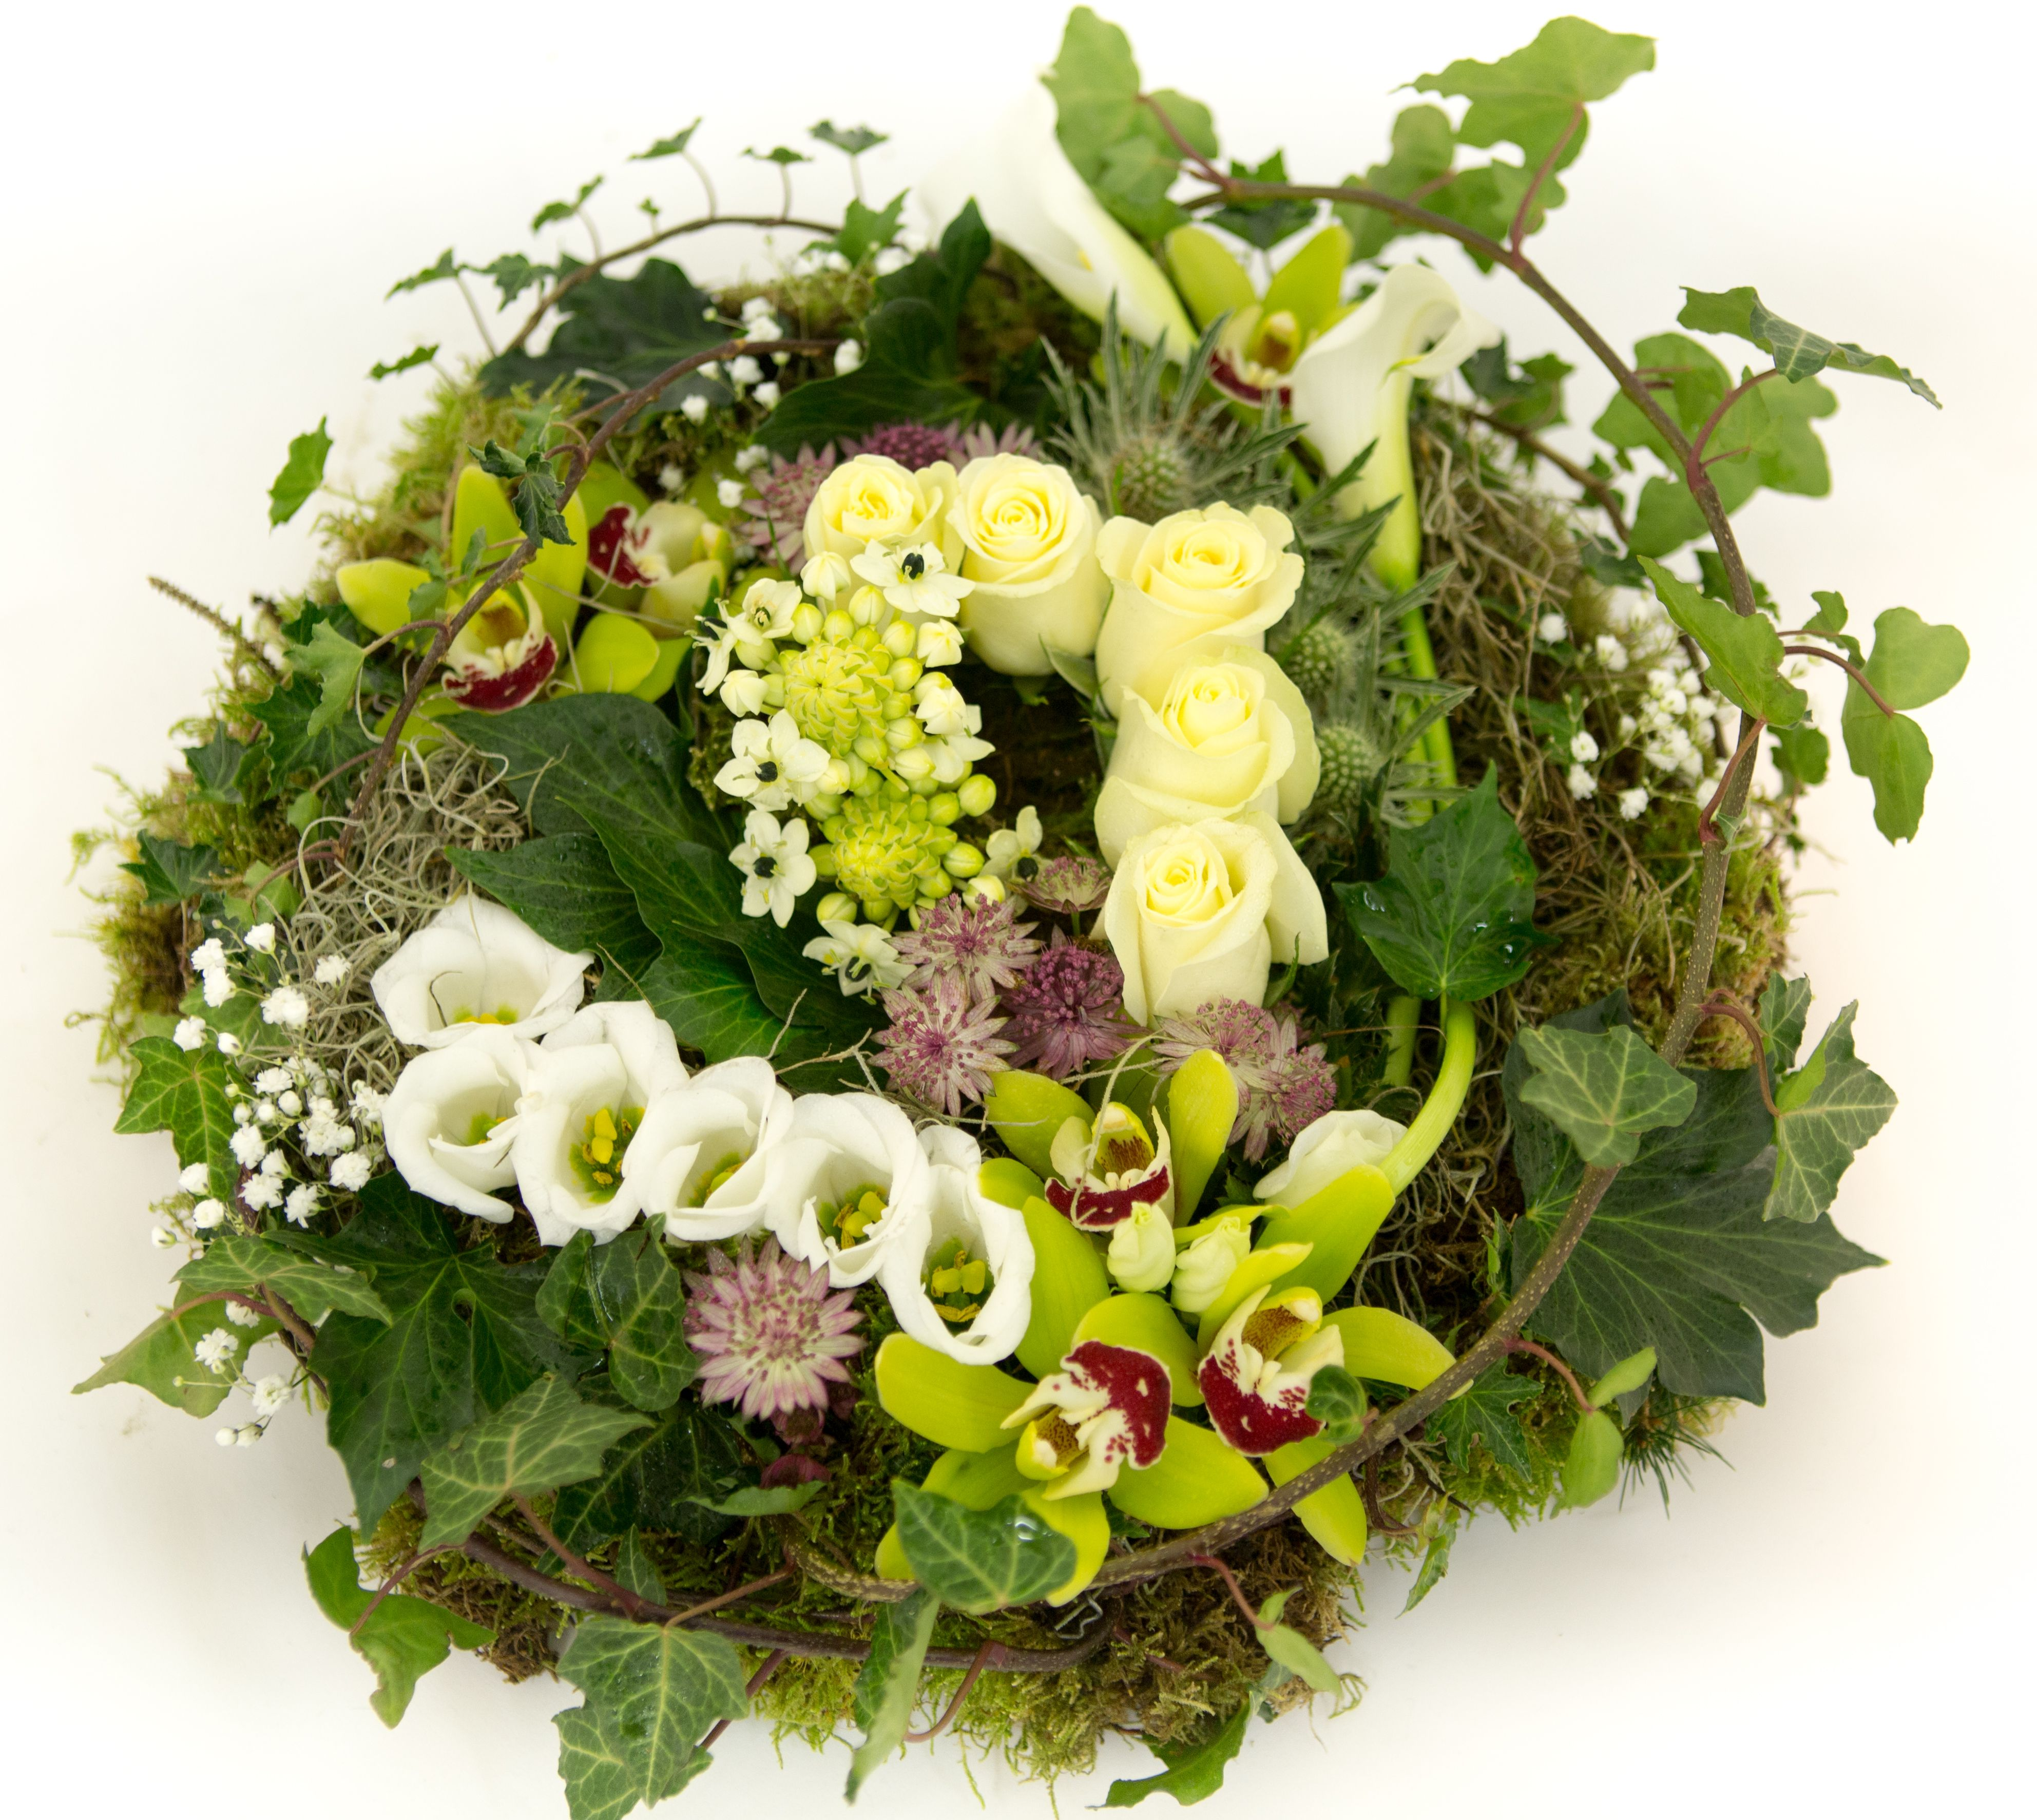 A Textured Posy Pad Just One Of The Many Sympathy Tributes Available